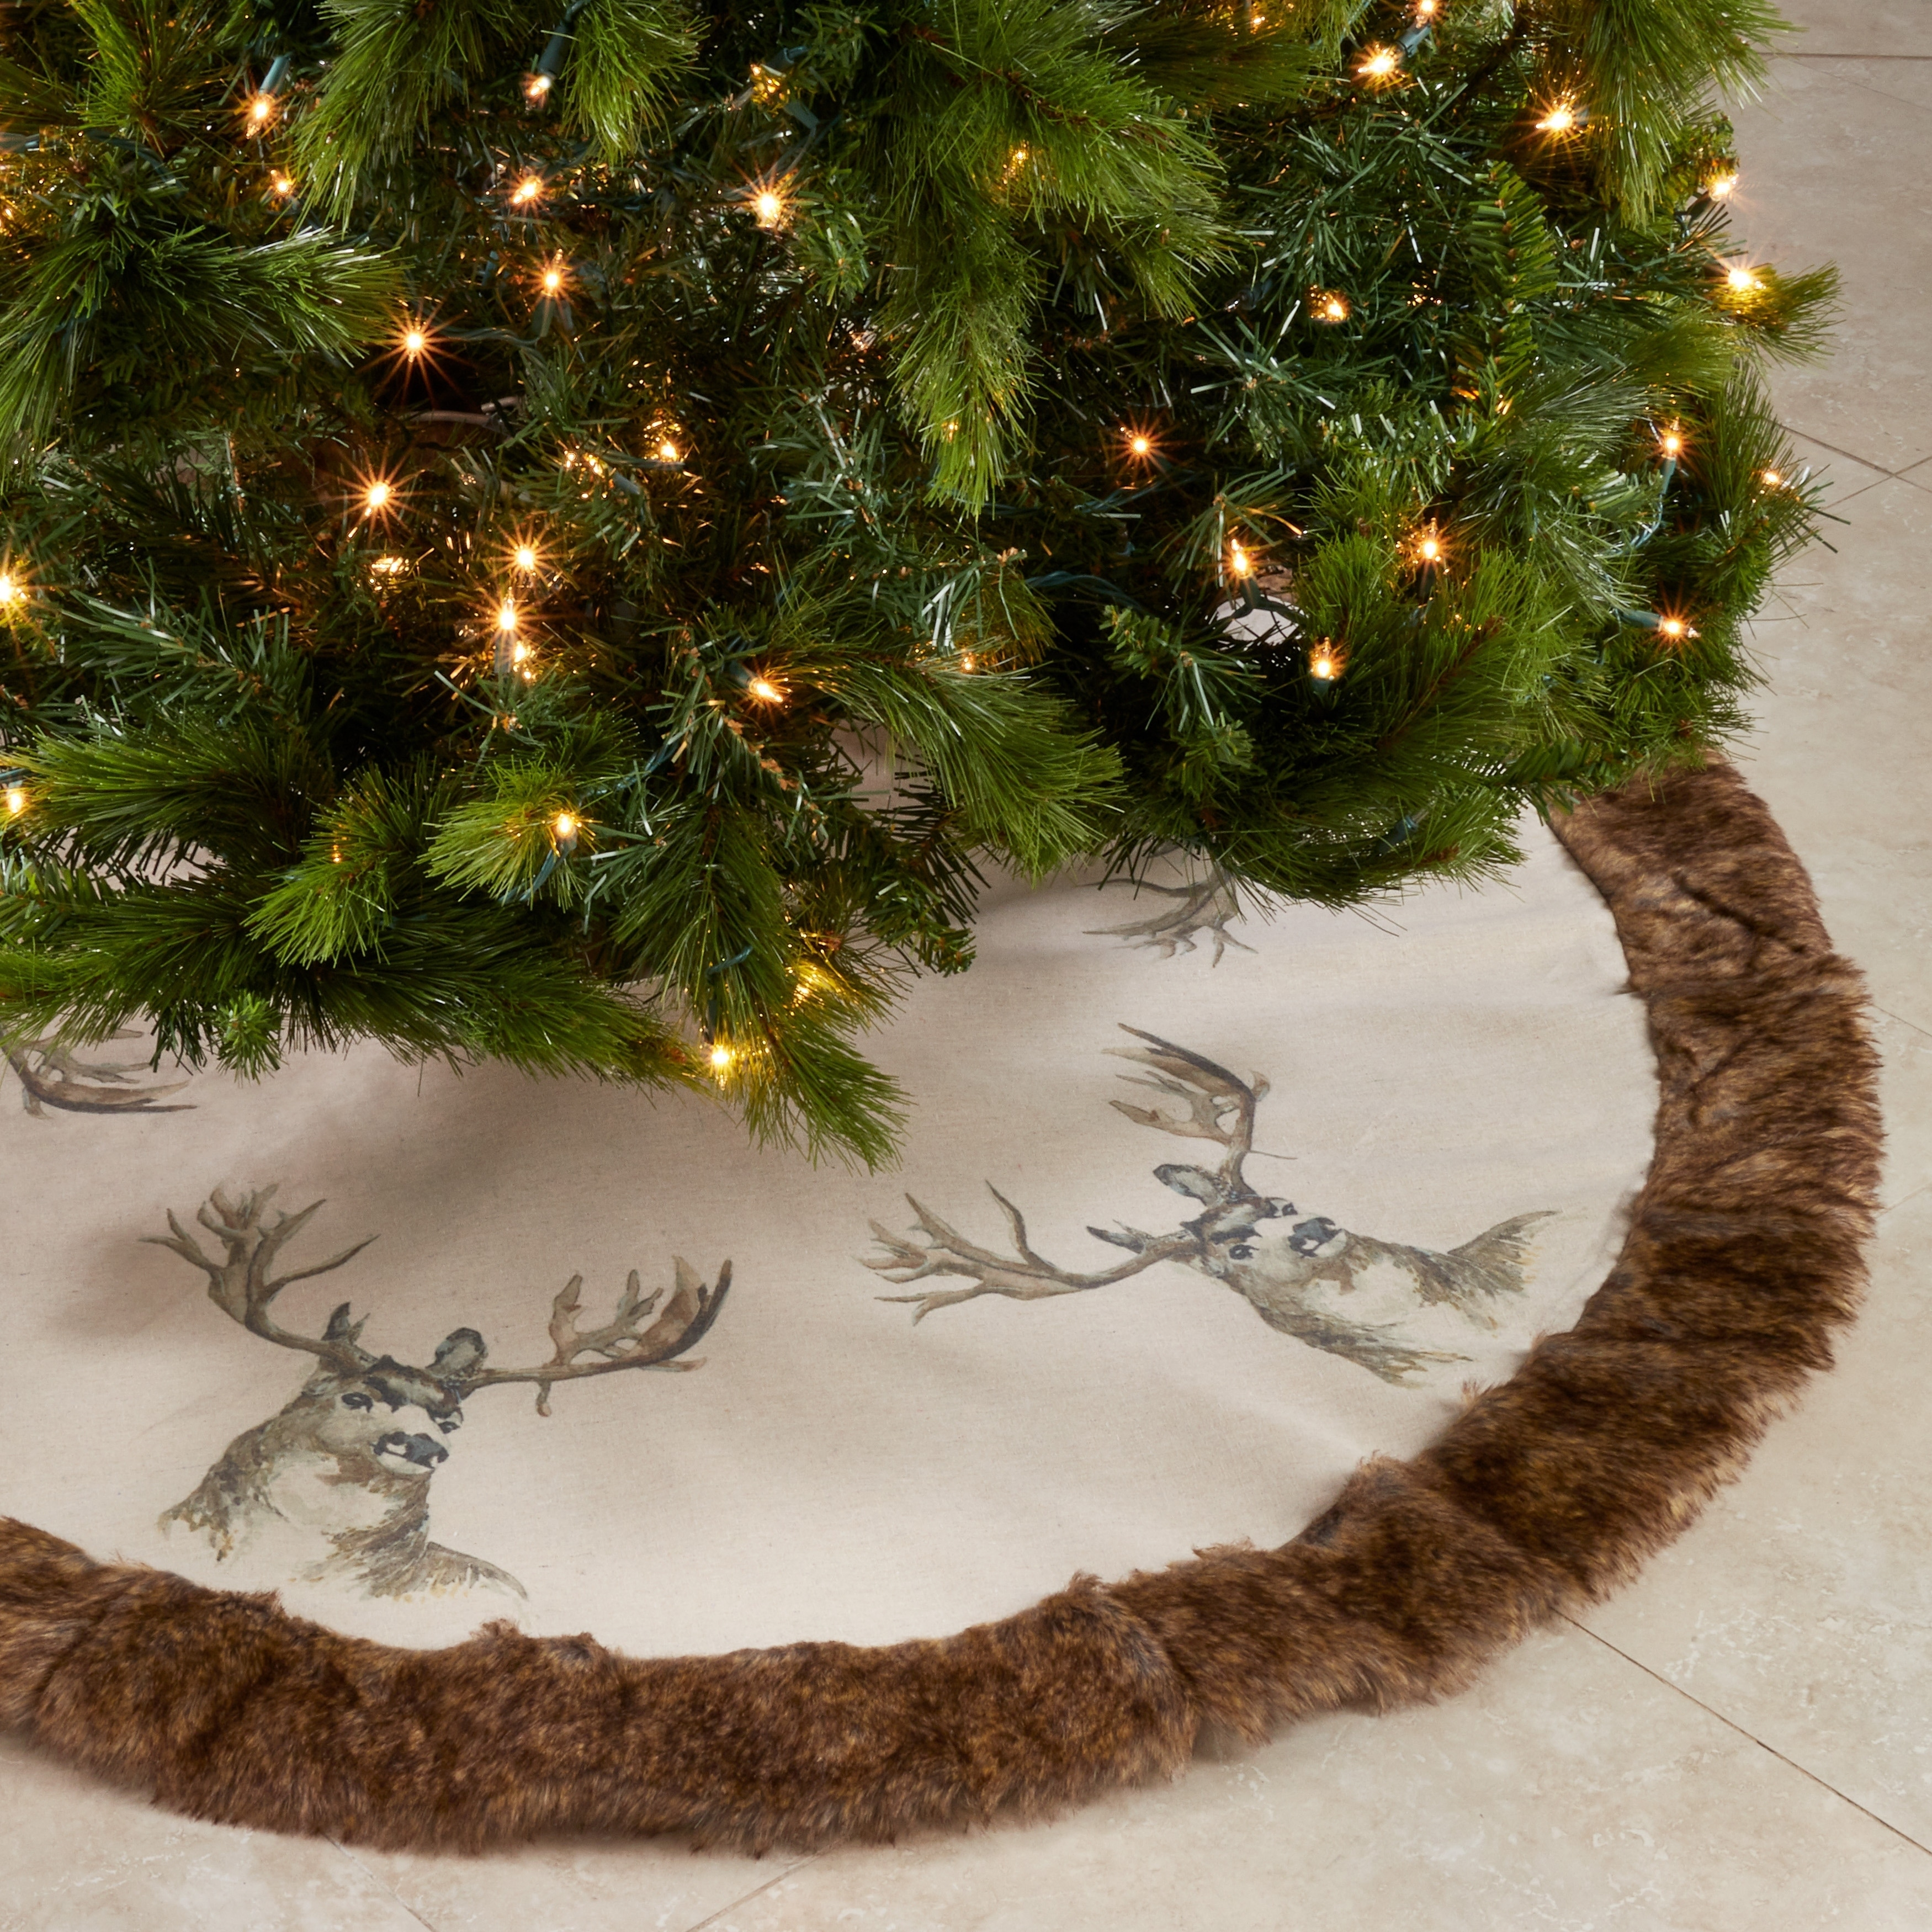 Deer Christmas Tree Skirt With Faux Fur Trim 52 X52 Overstock 29381323